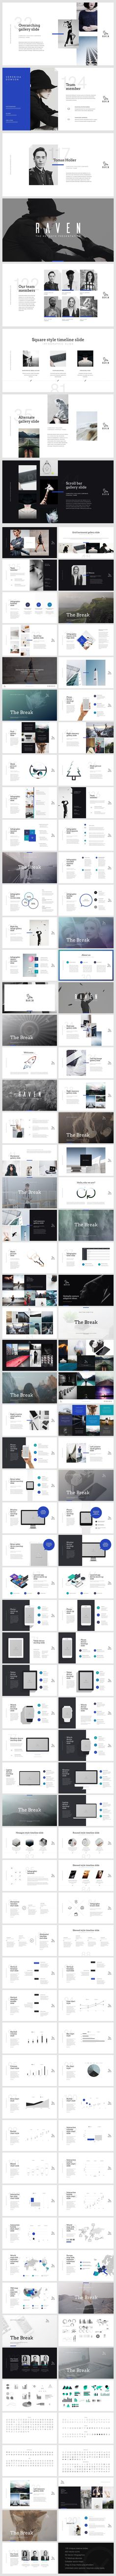 RAVEN Keynote Presentation Template by GoaShape on @creativemarket